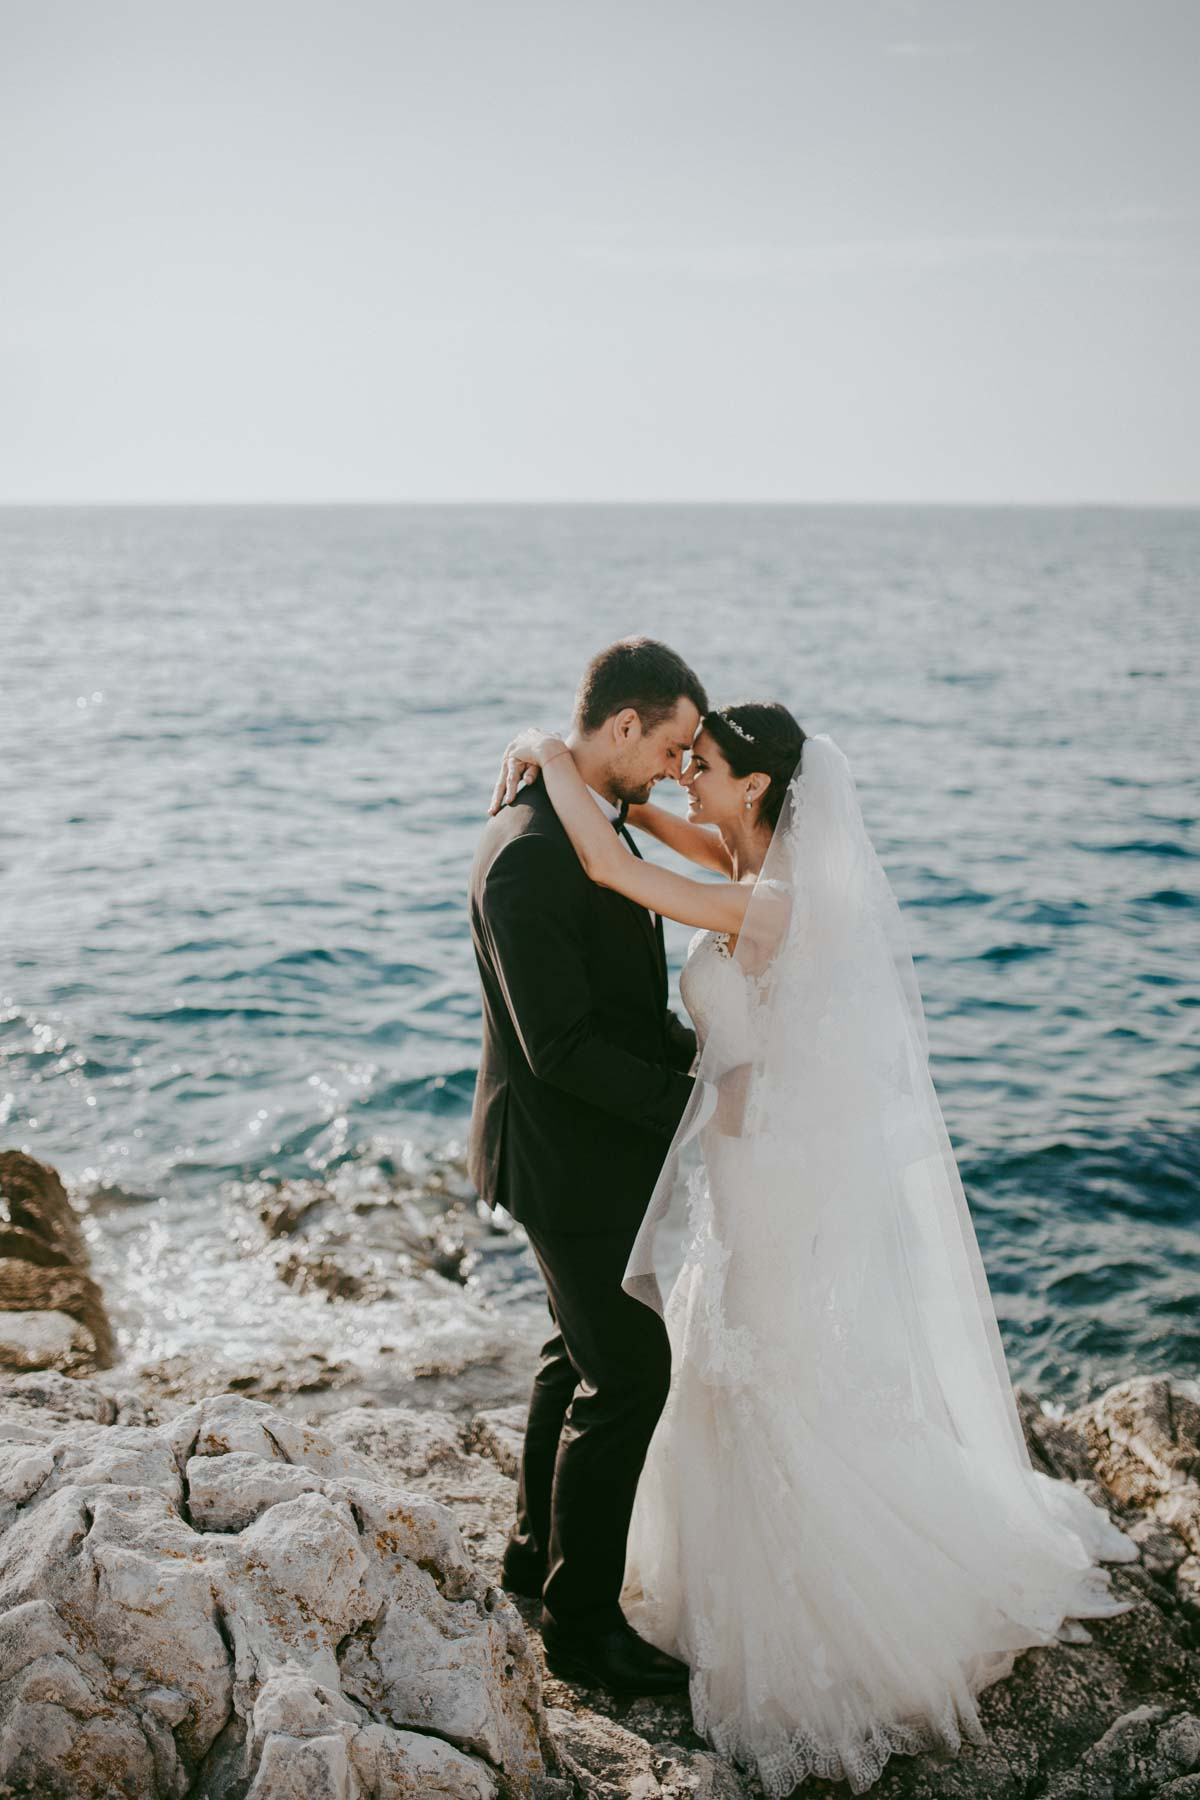 croatian wedding photofrapher - rovigno - wedding